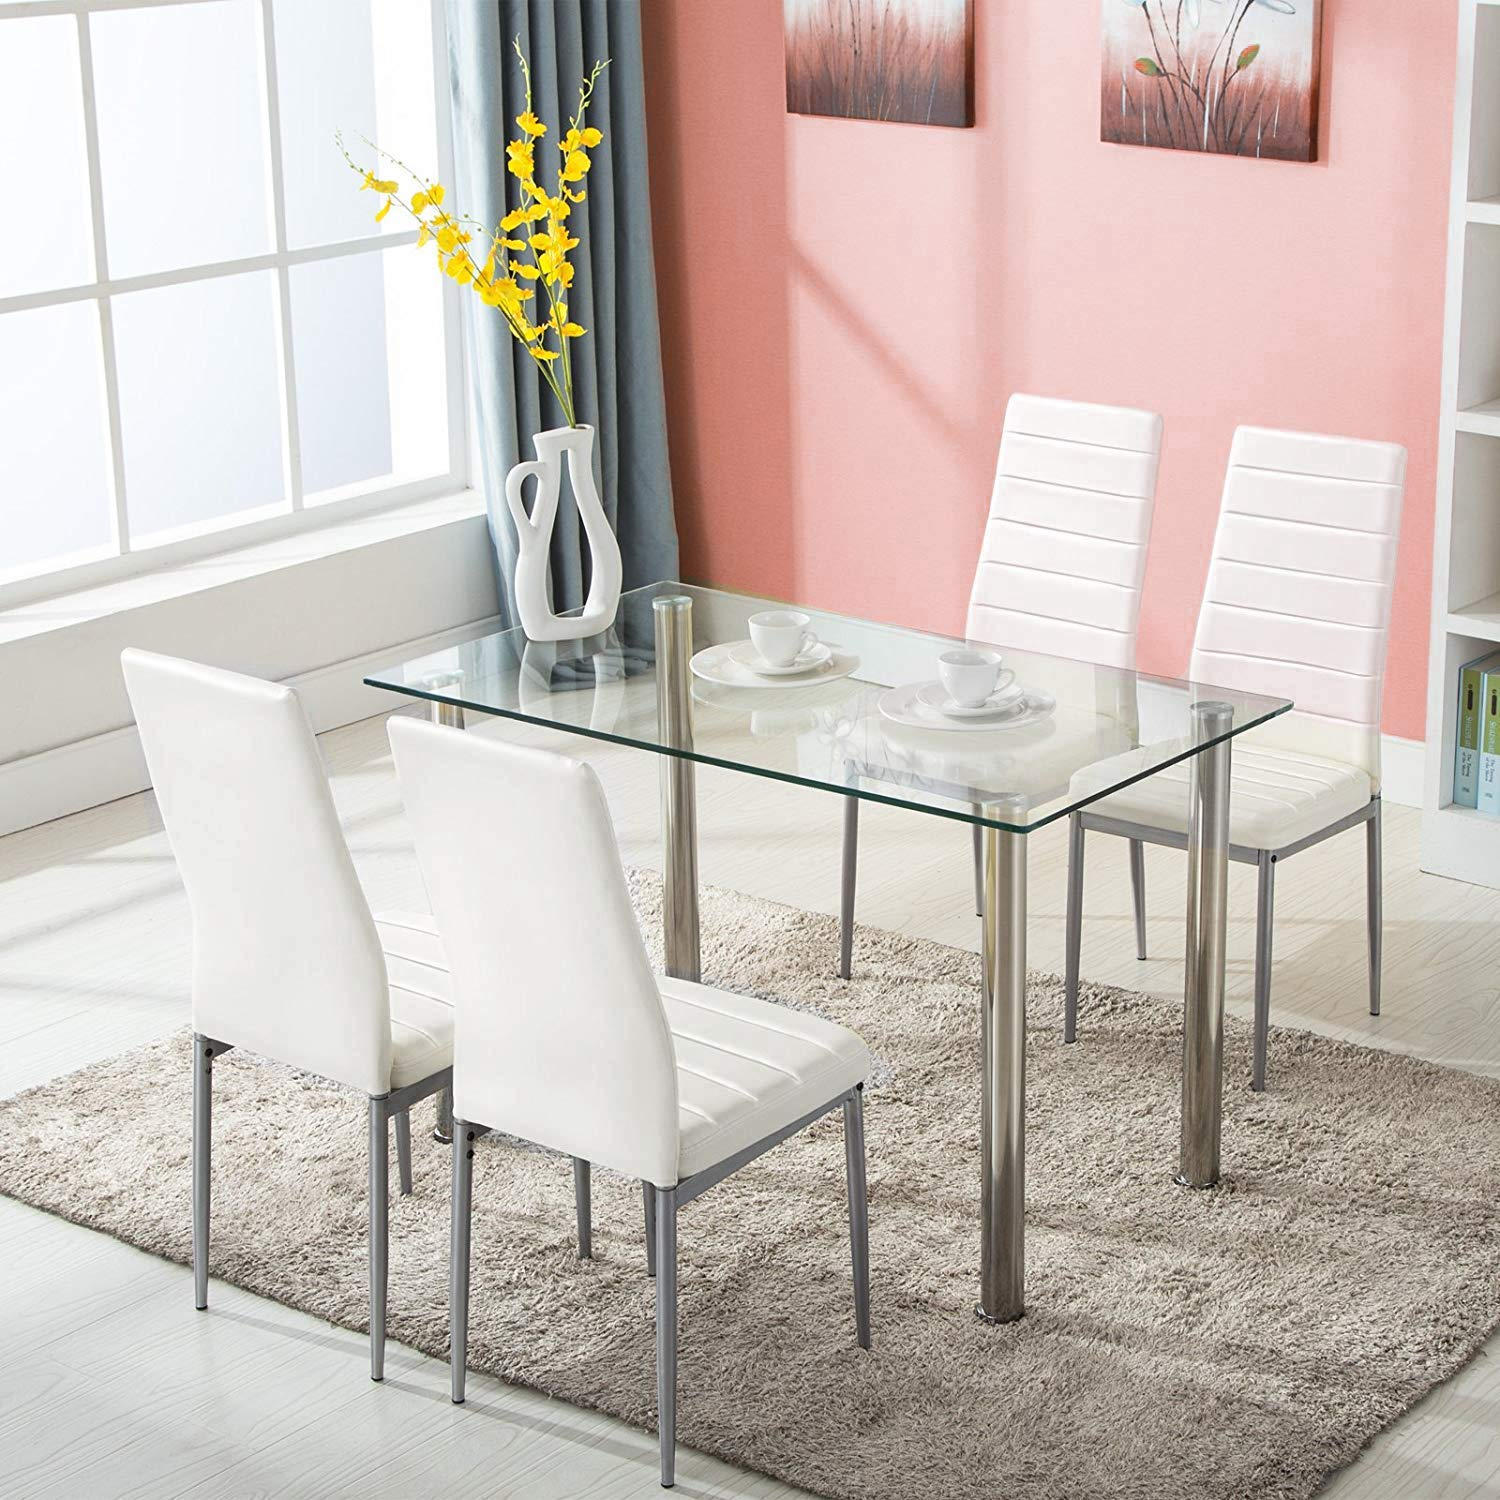 JOYBASE Tempered Dining Glass Top Table with 4 Leather Chairs